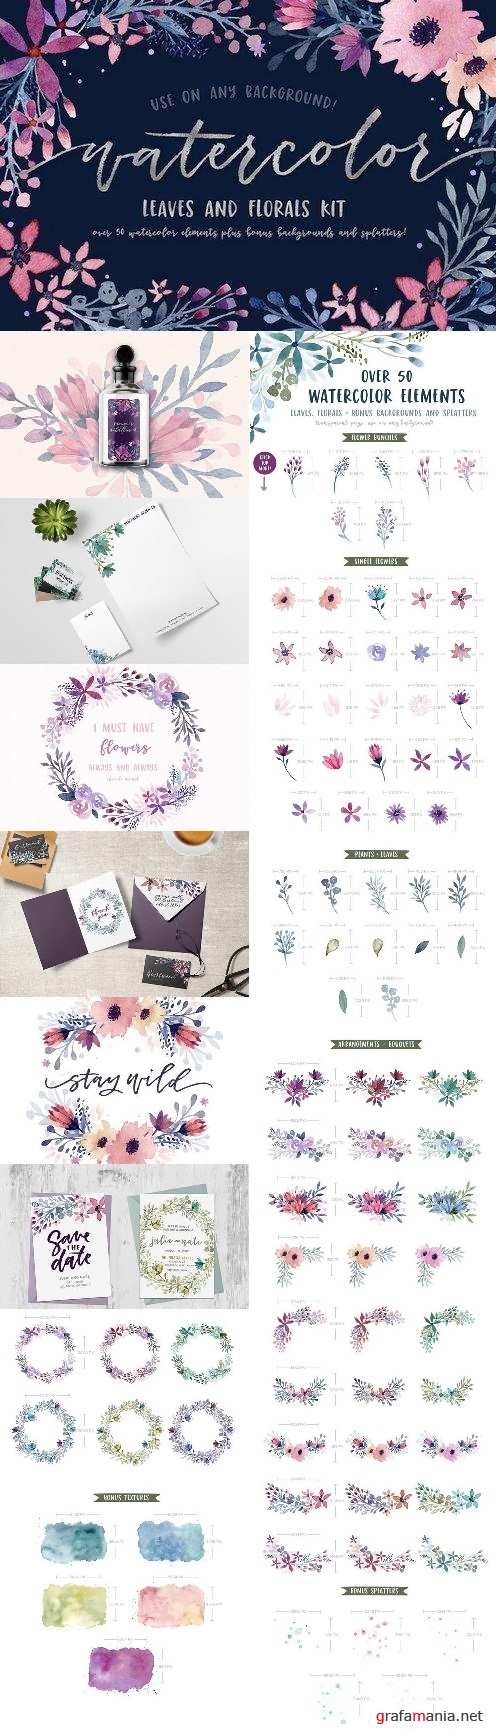 Watercolor Leaves and Florals Kit - 1485476